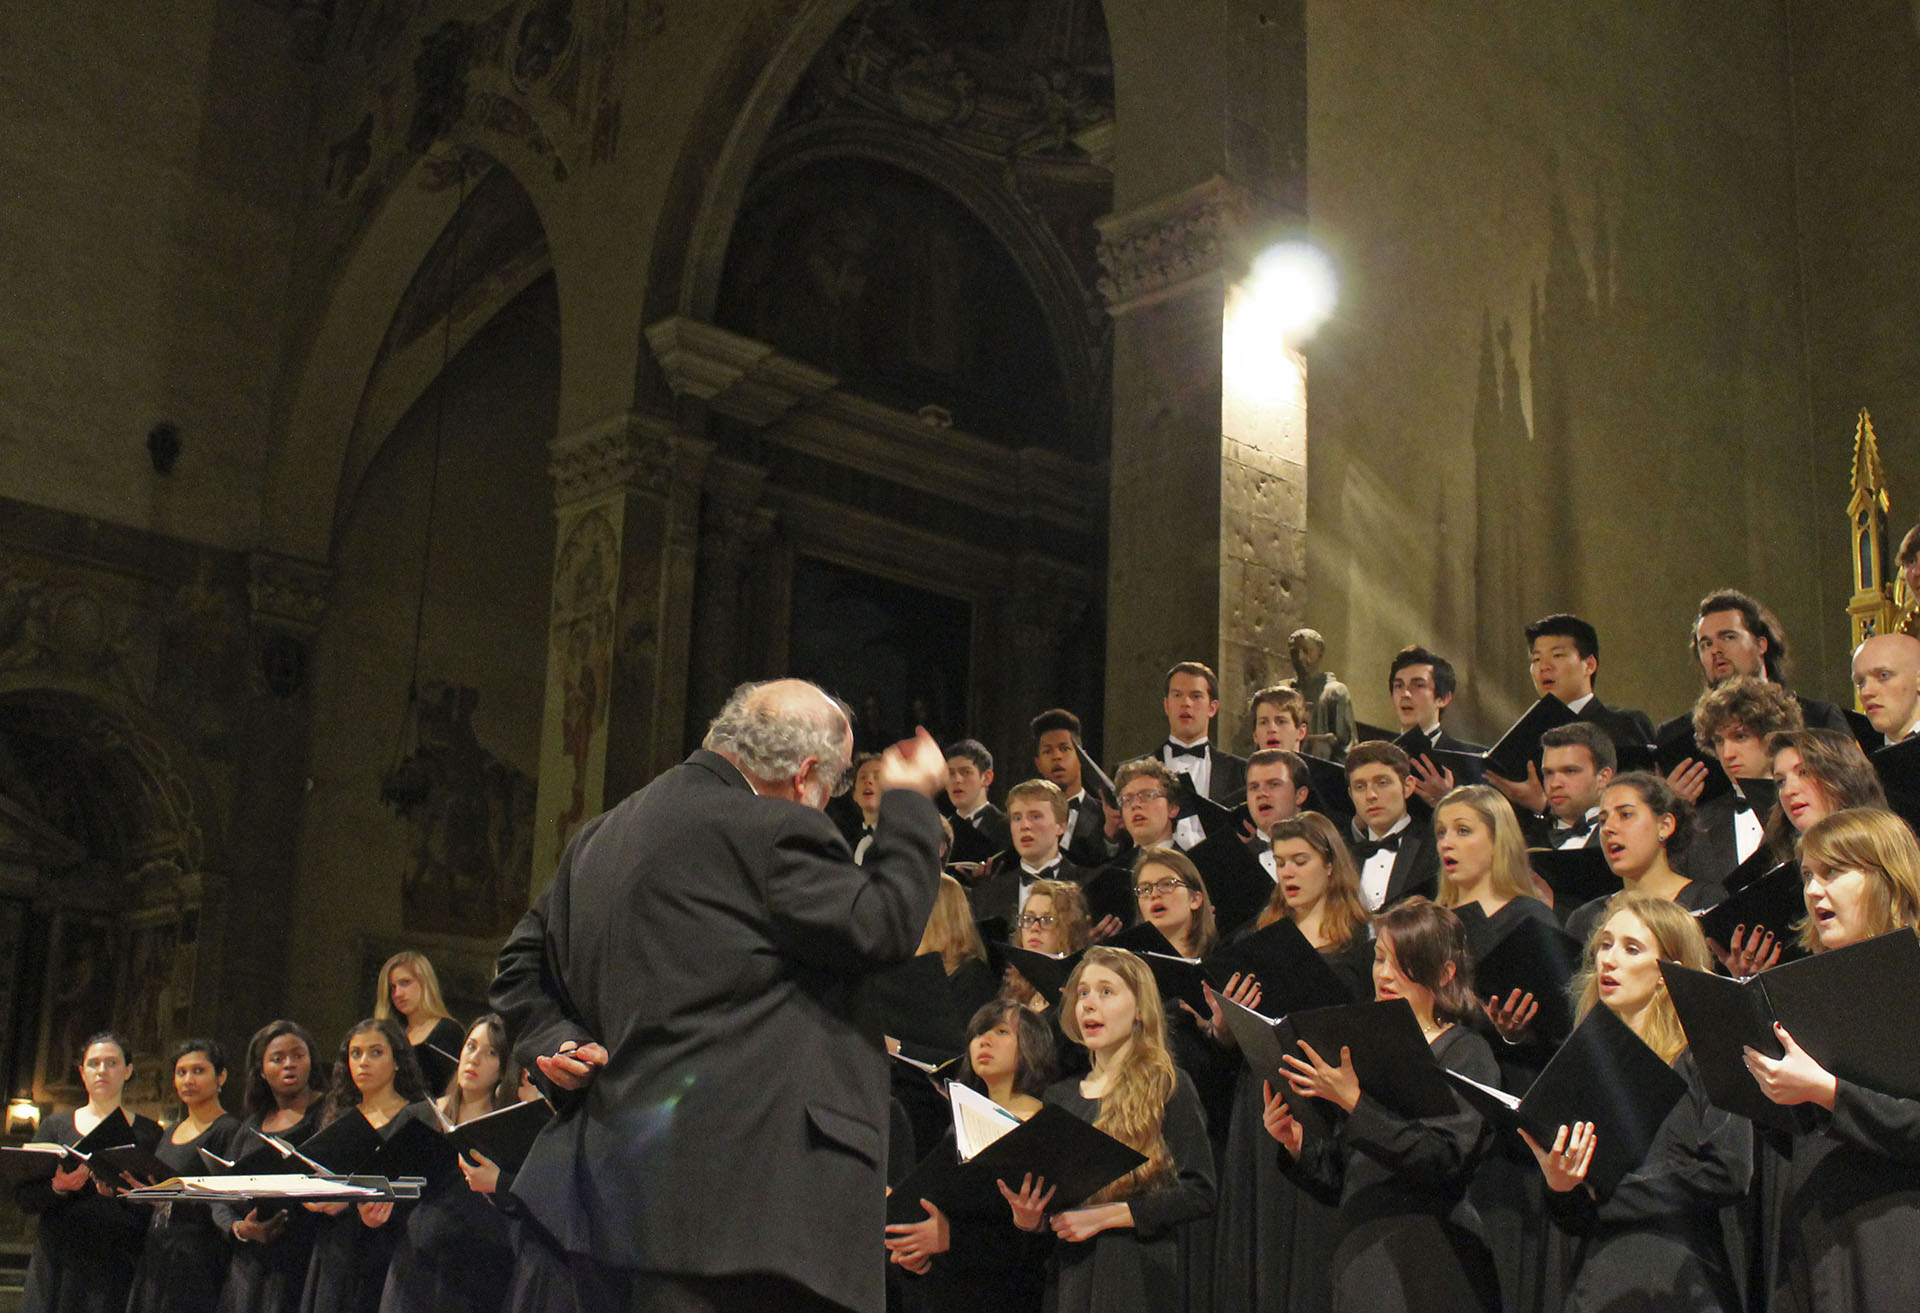 The choir performing in The Basilica Santa Trinita in Florence.